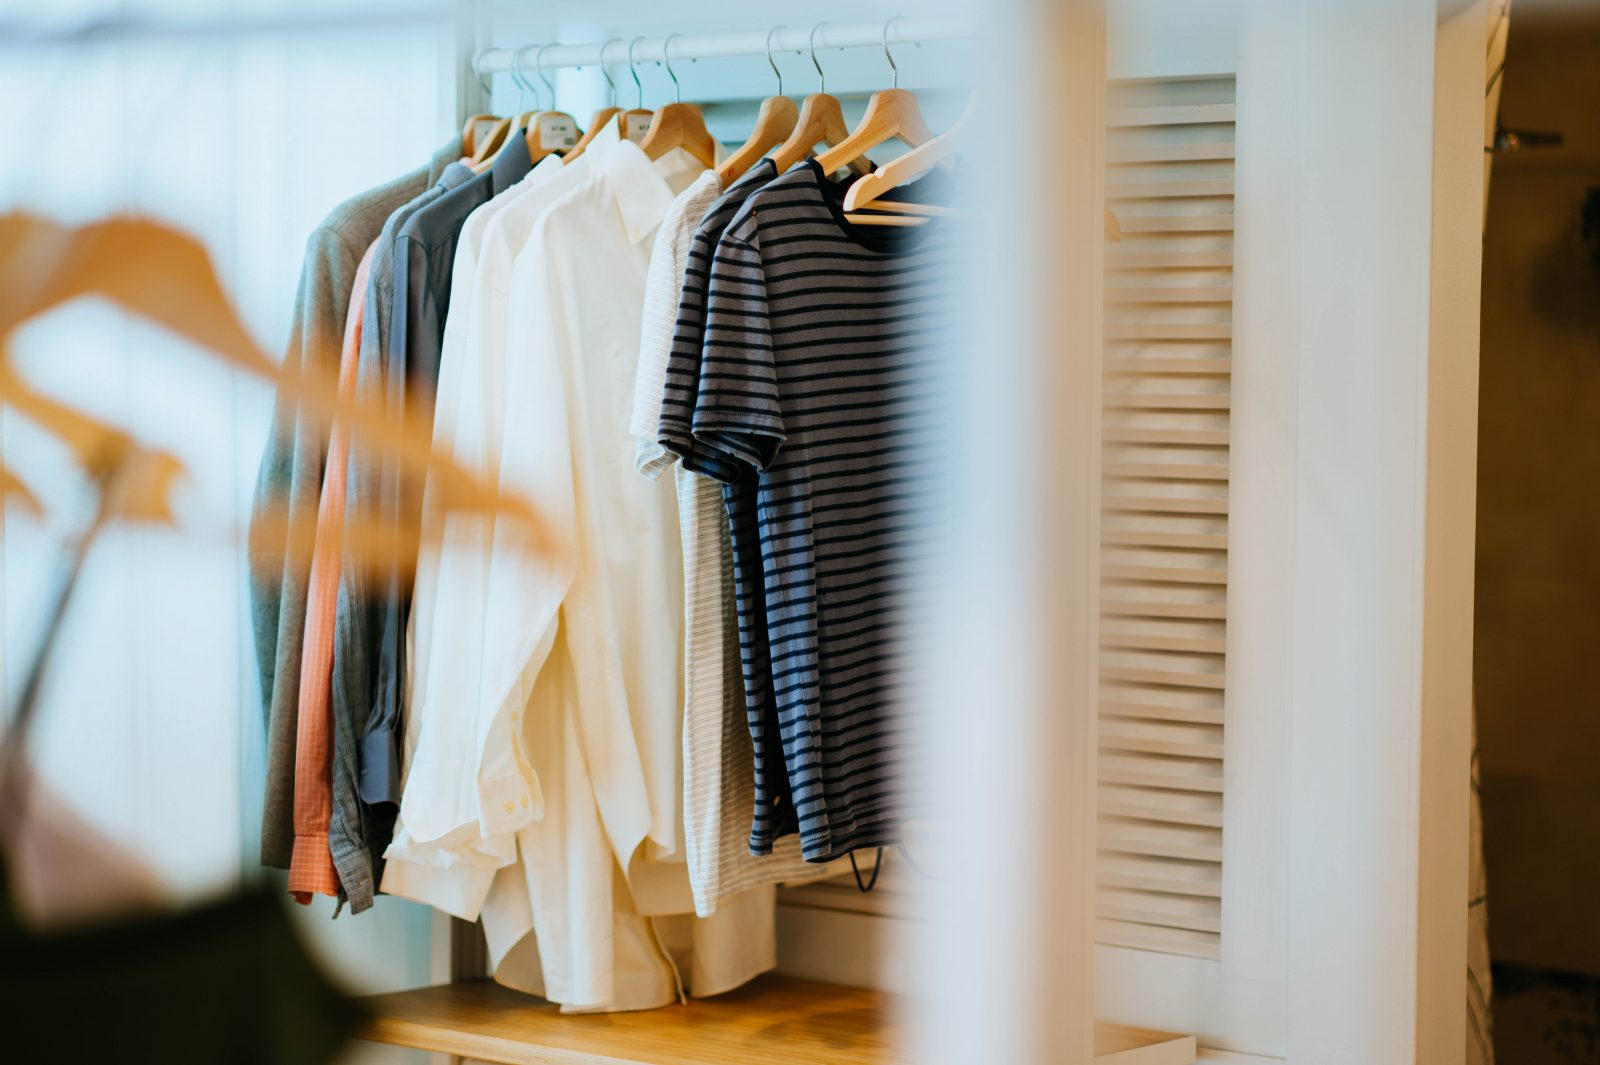 Shop your Closet: Building a Sustainable Wardrobe with What You Currently Have